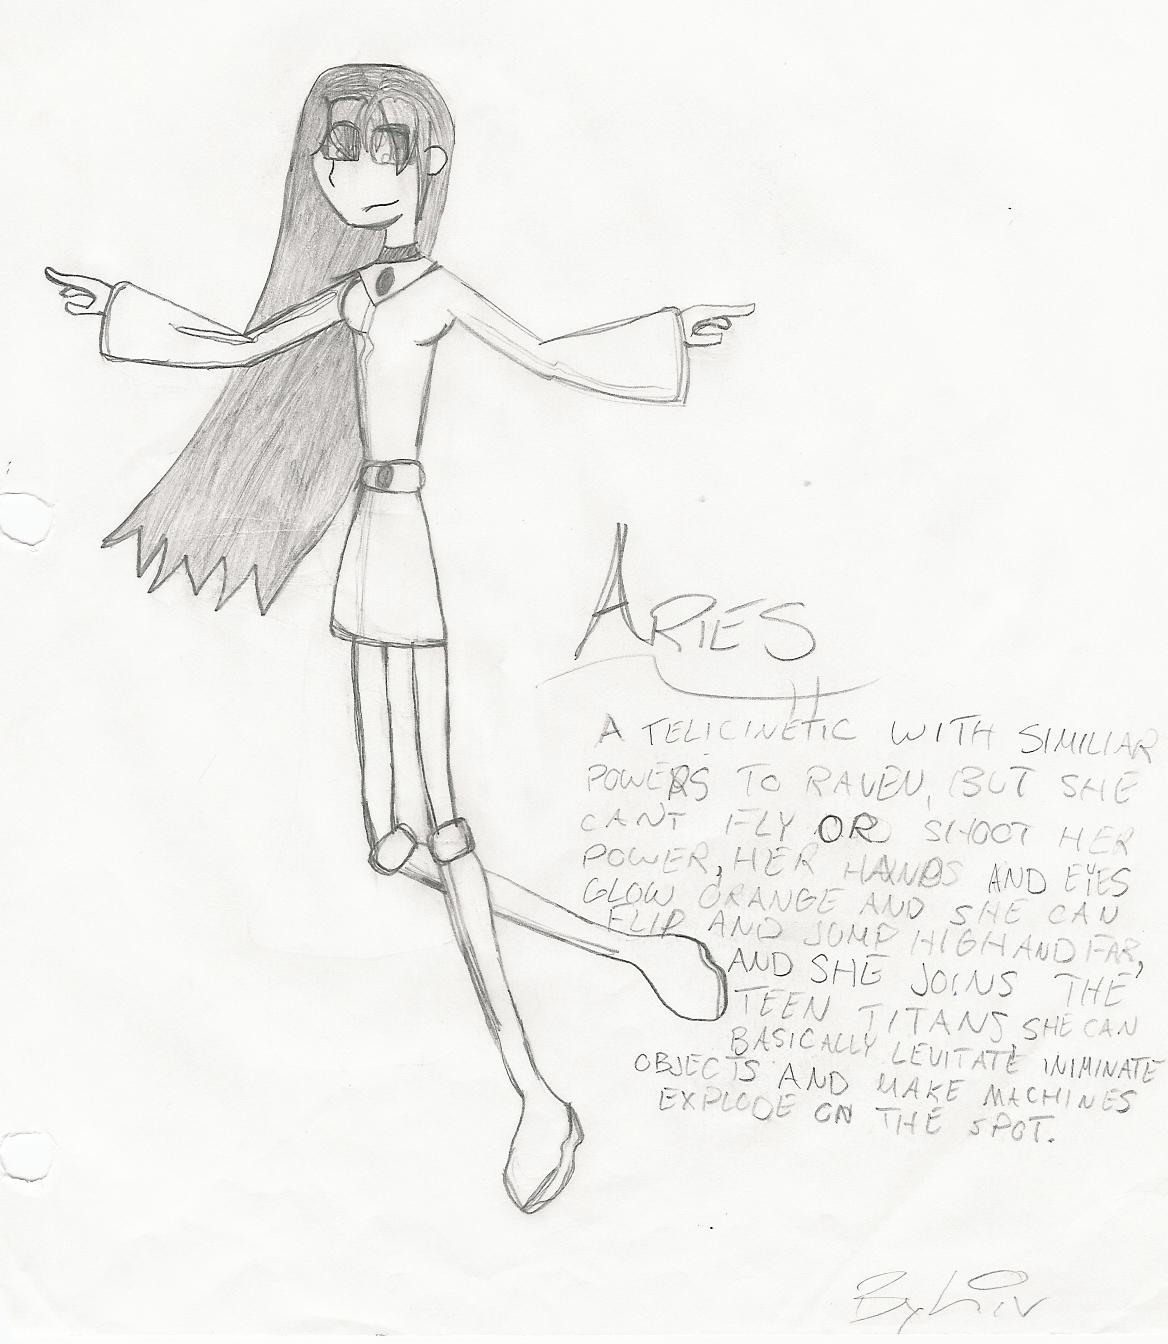 Aries by bubblefield